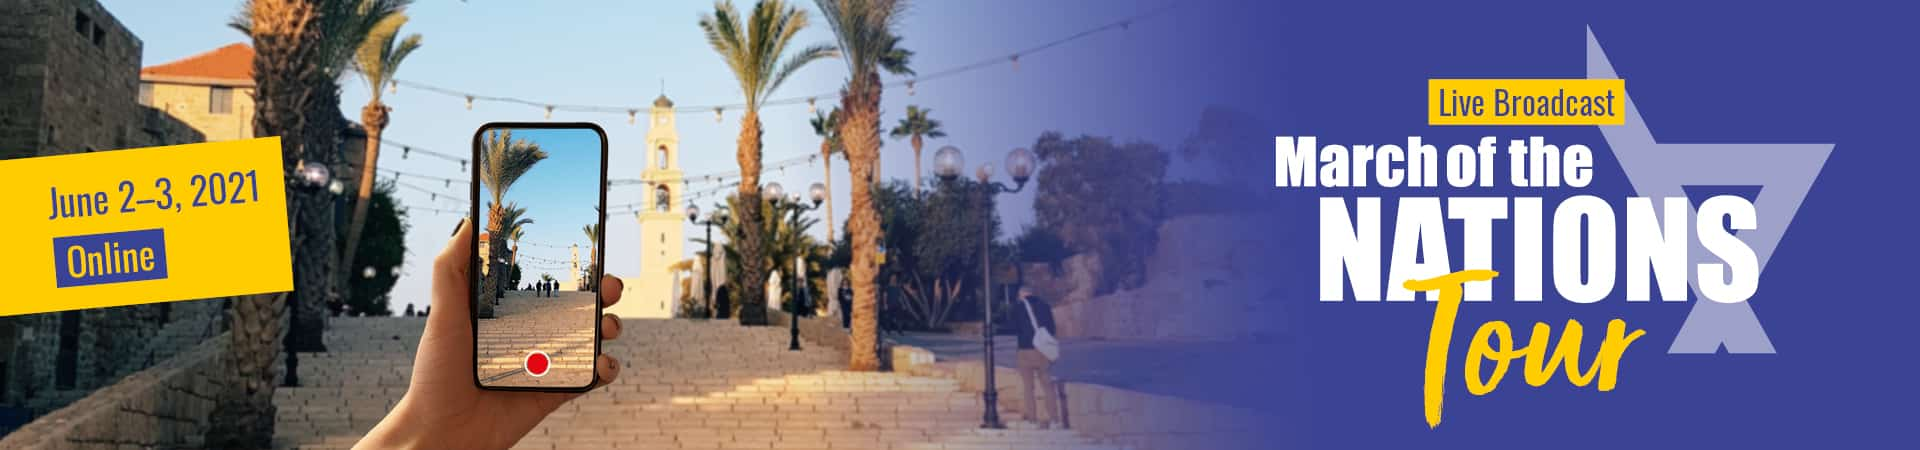 March of the Nations 2021 Israel Tour Online